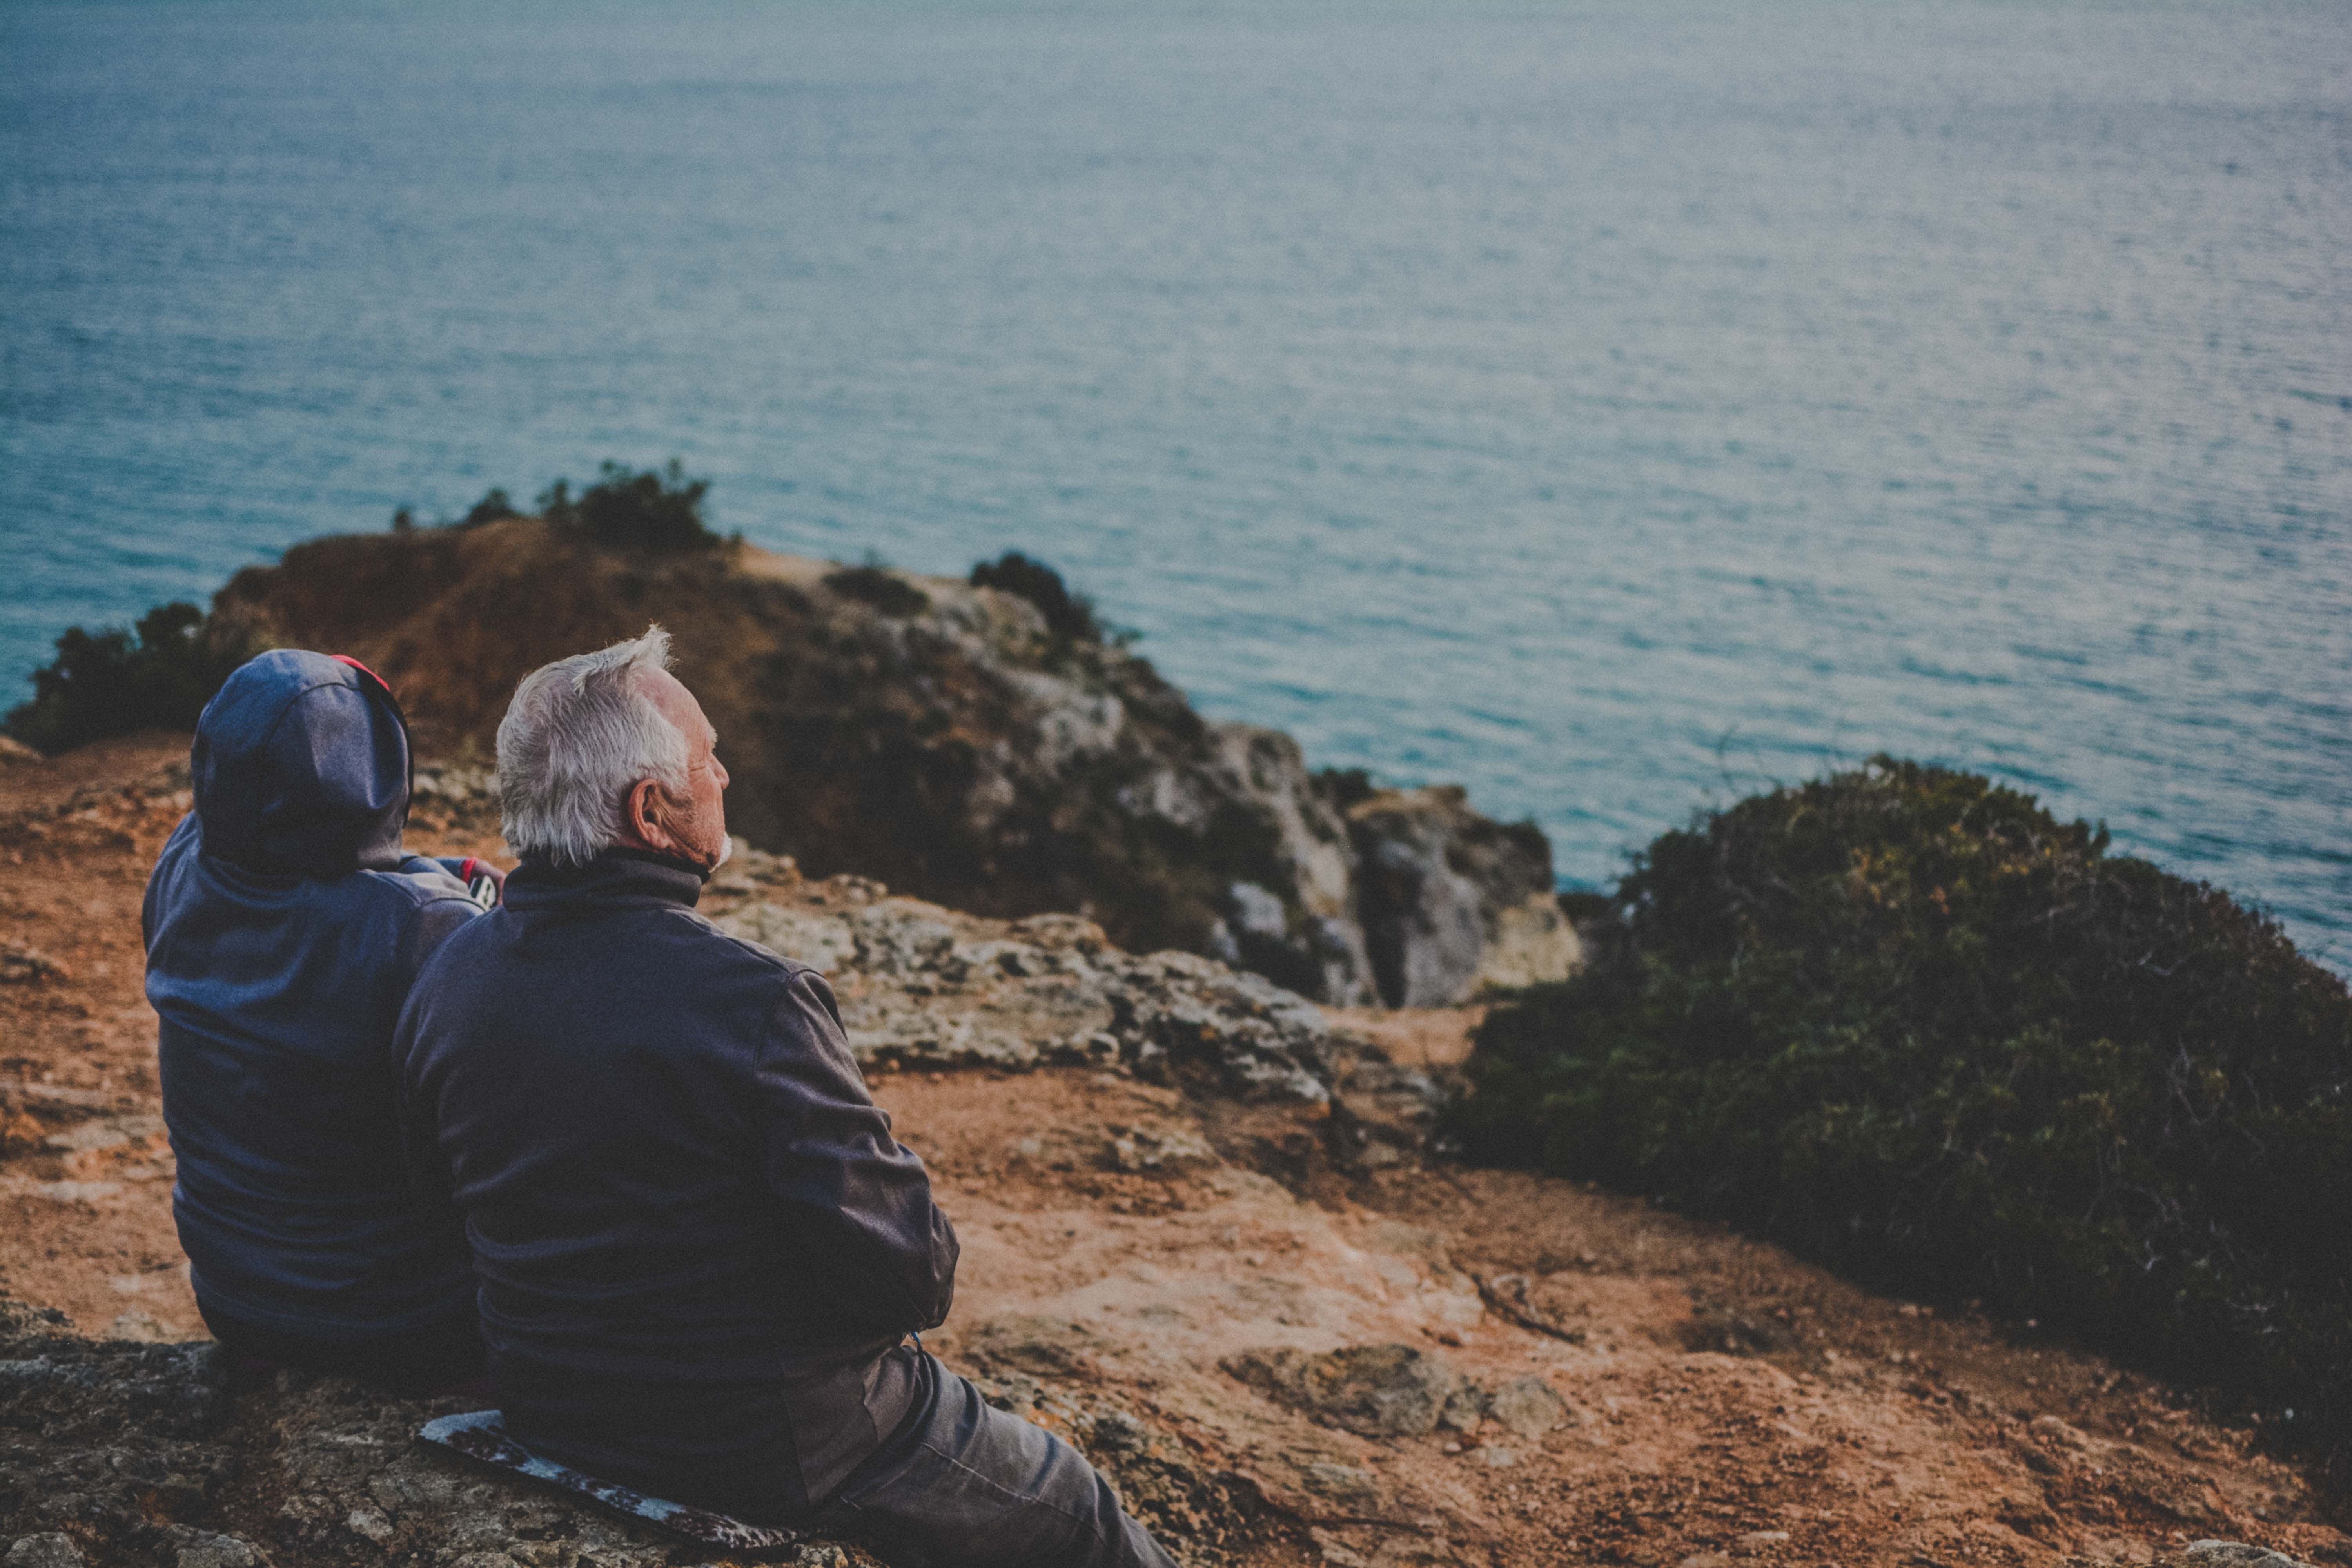 two person sitting on rock staring at body of water during daytime